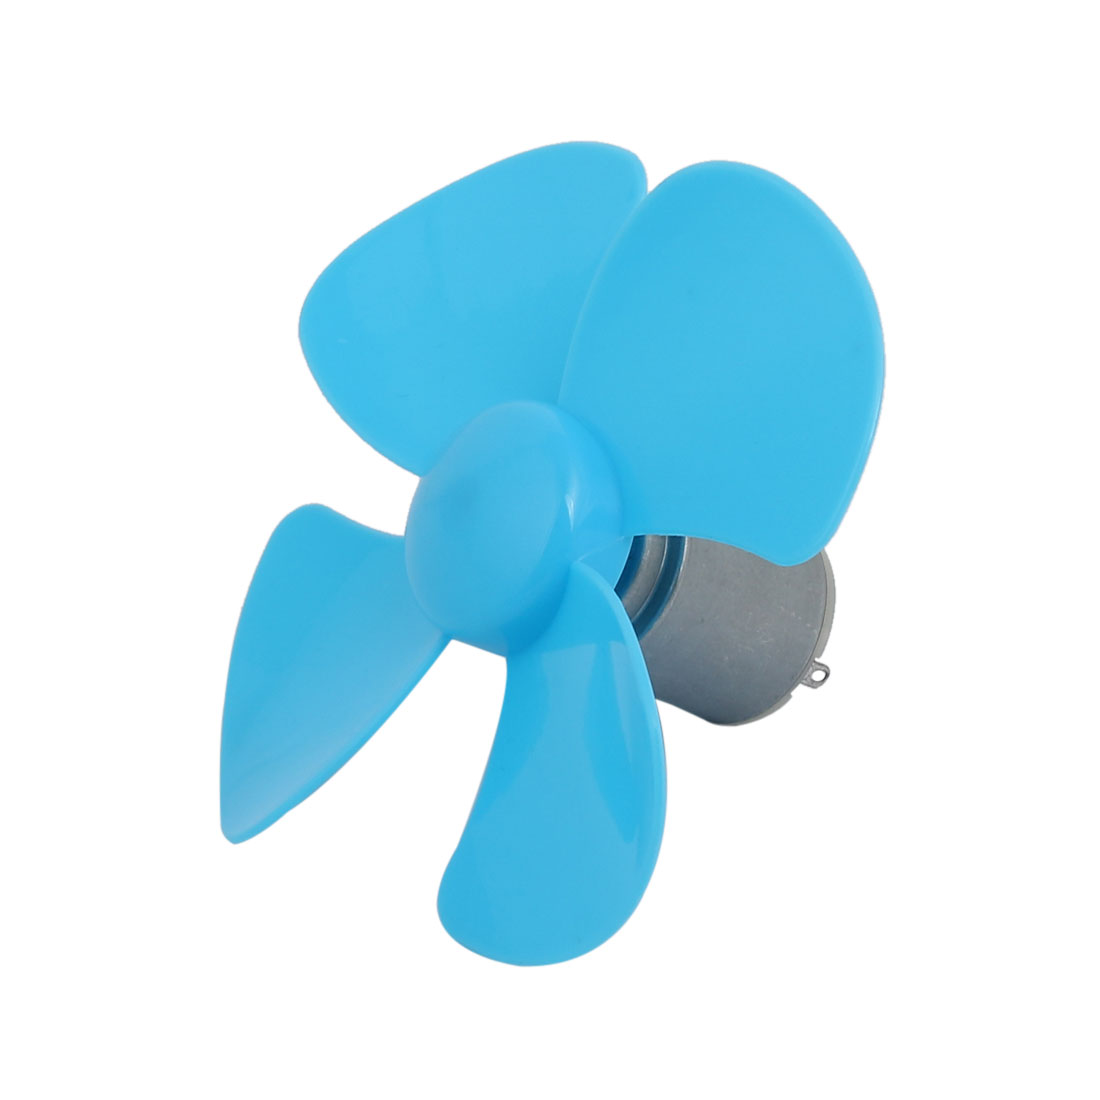 DC1.5V 0.09A 1500-3800RPM Motor 4 Vanes 100mm Rotating Diameter Propeller Blue